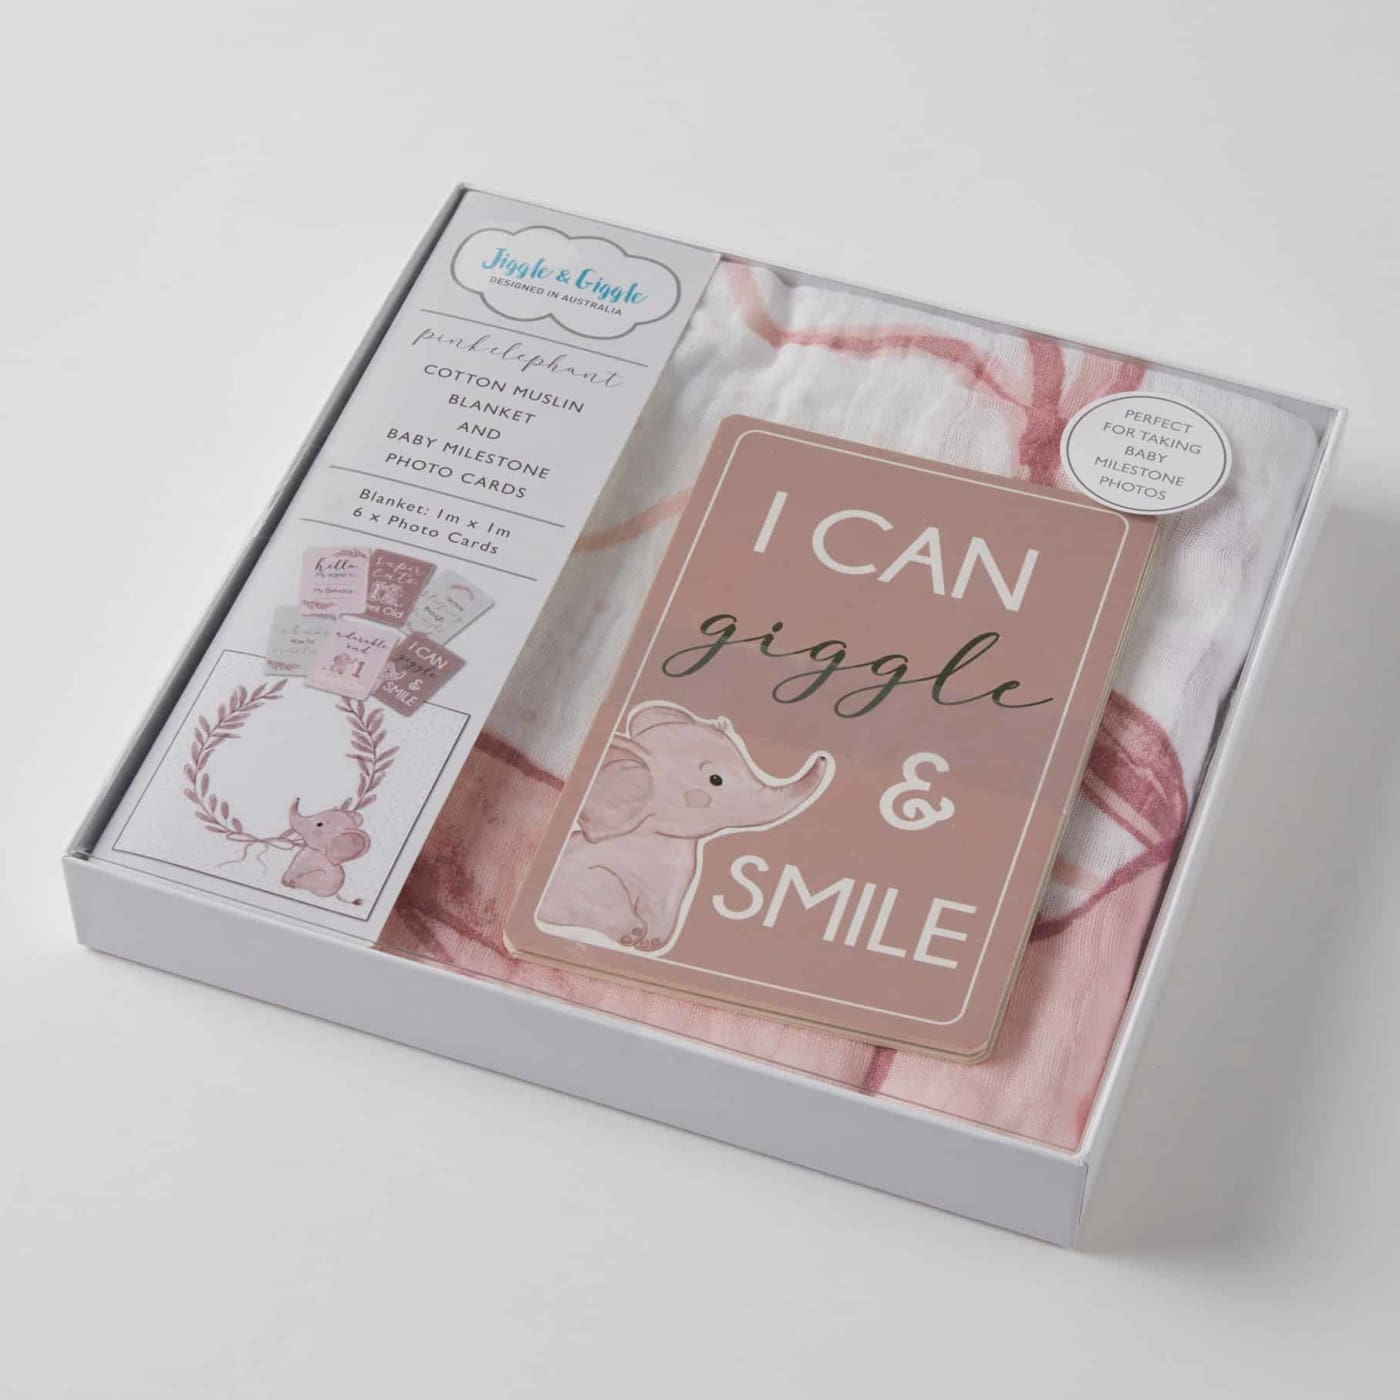 Jiggle & Giggle Milestone Cotton Muslin & Baby Photo Cards - Pink Elephant - Pink Elephant - GIFTWARE - MILESTONE BLOCKS/CARDS